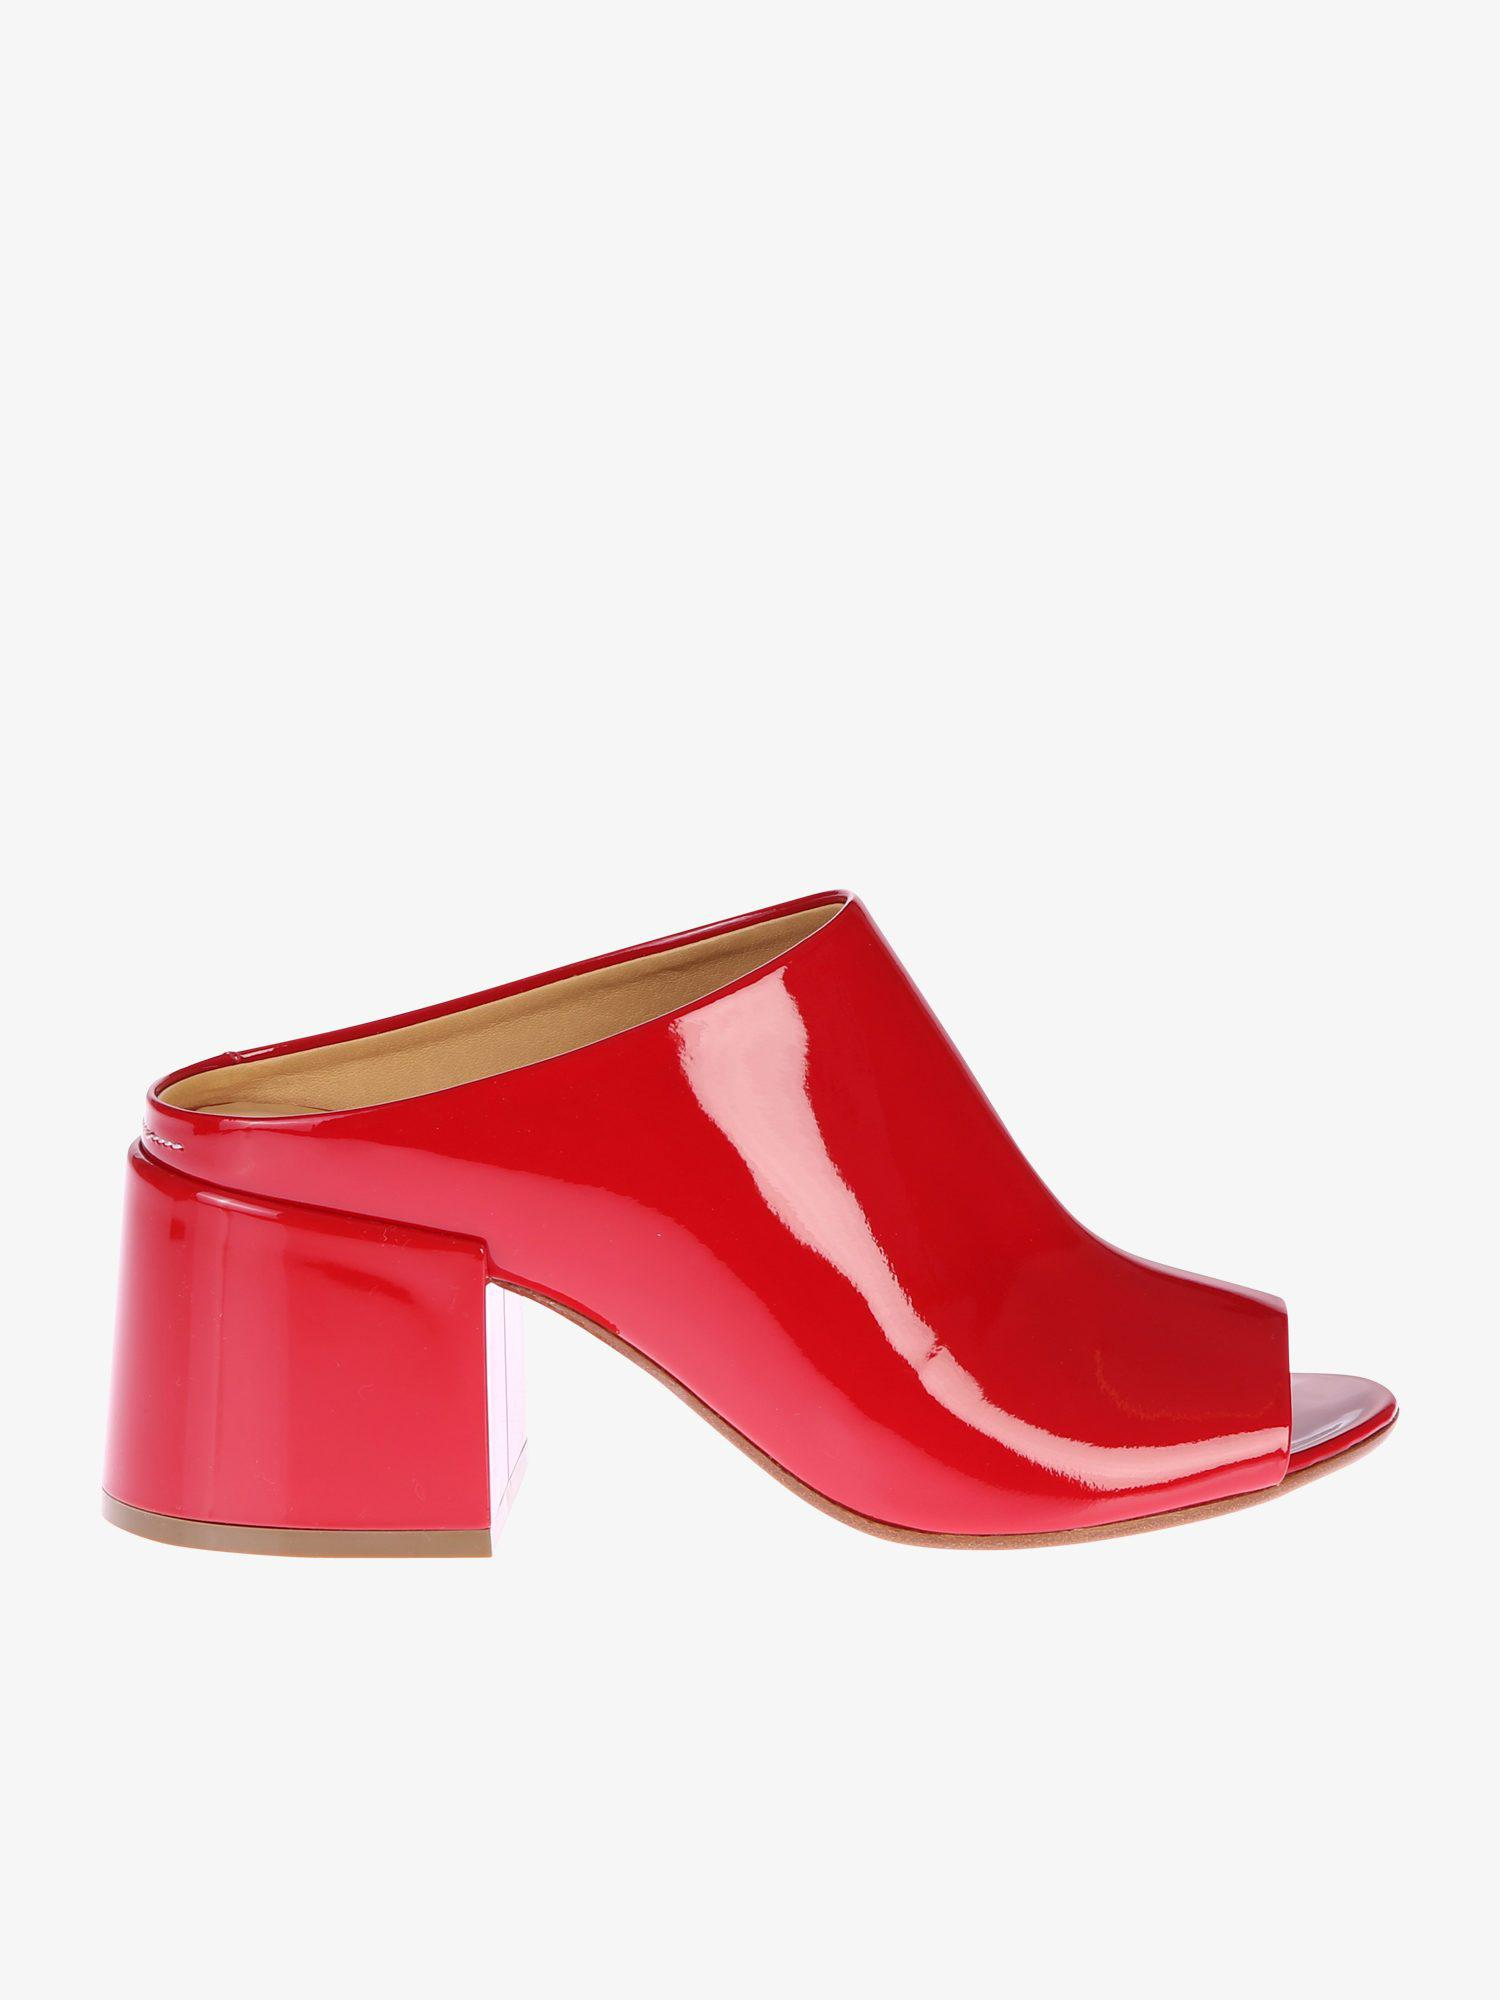 c709975b0288 Mm6 By Maison Martin Margiela Patent Mules in Red - Lyst